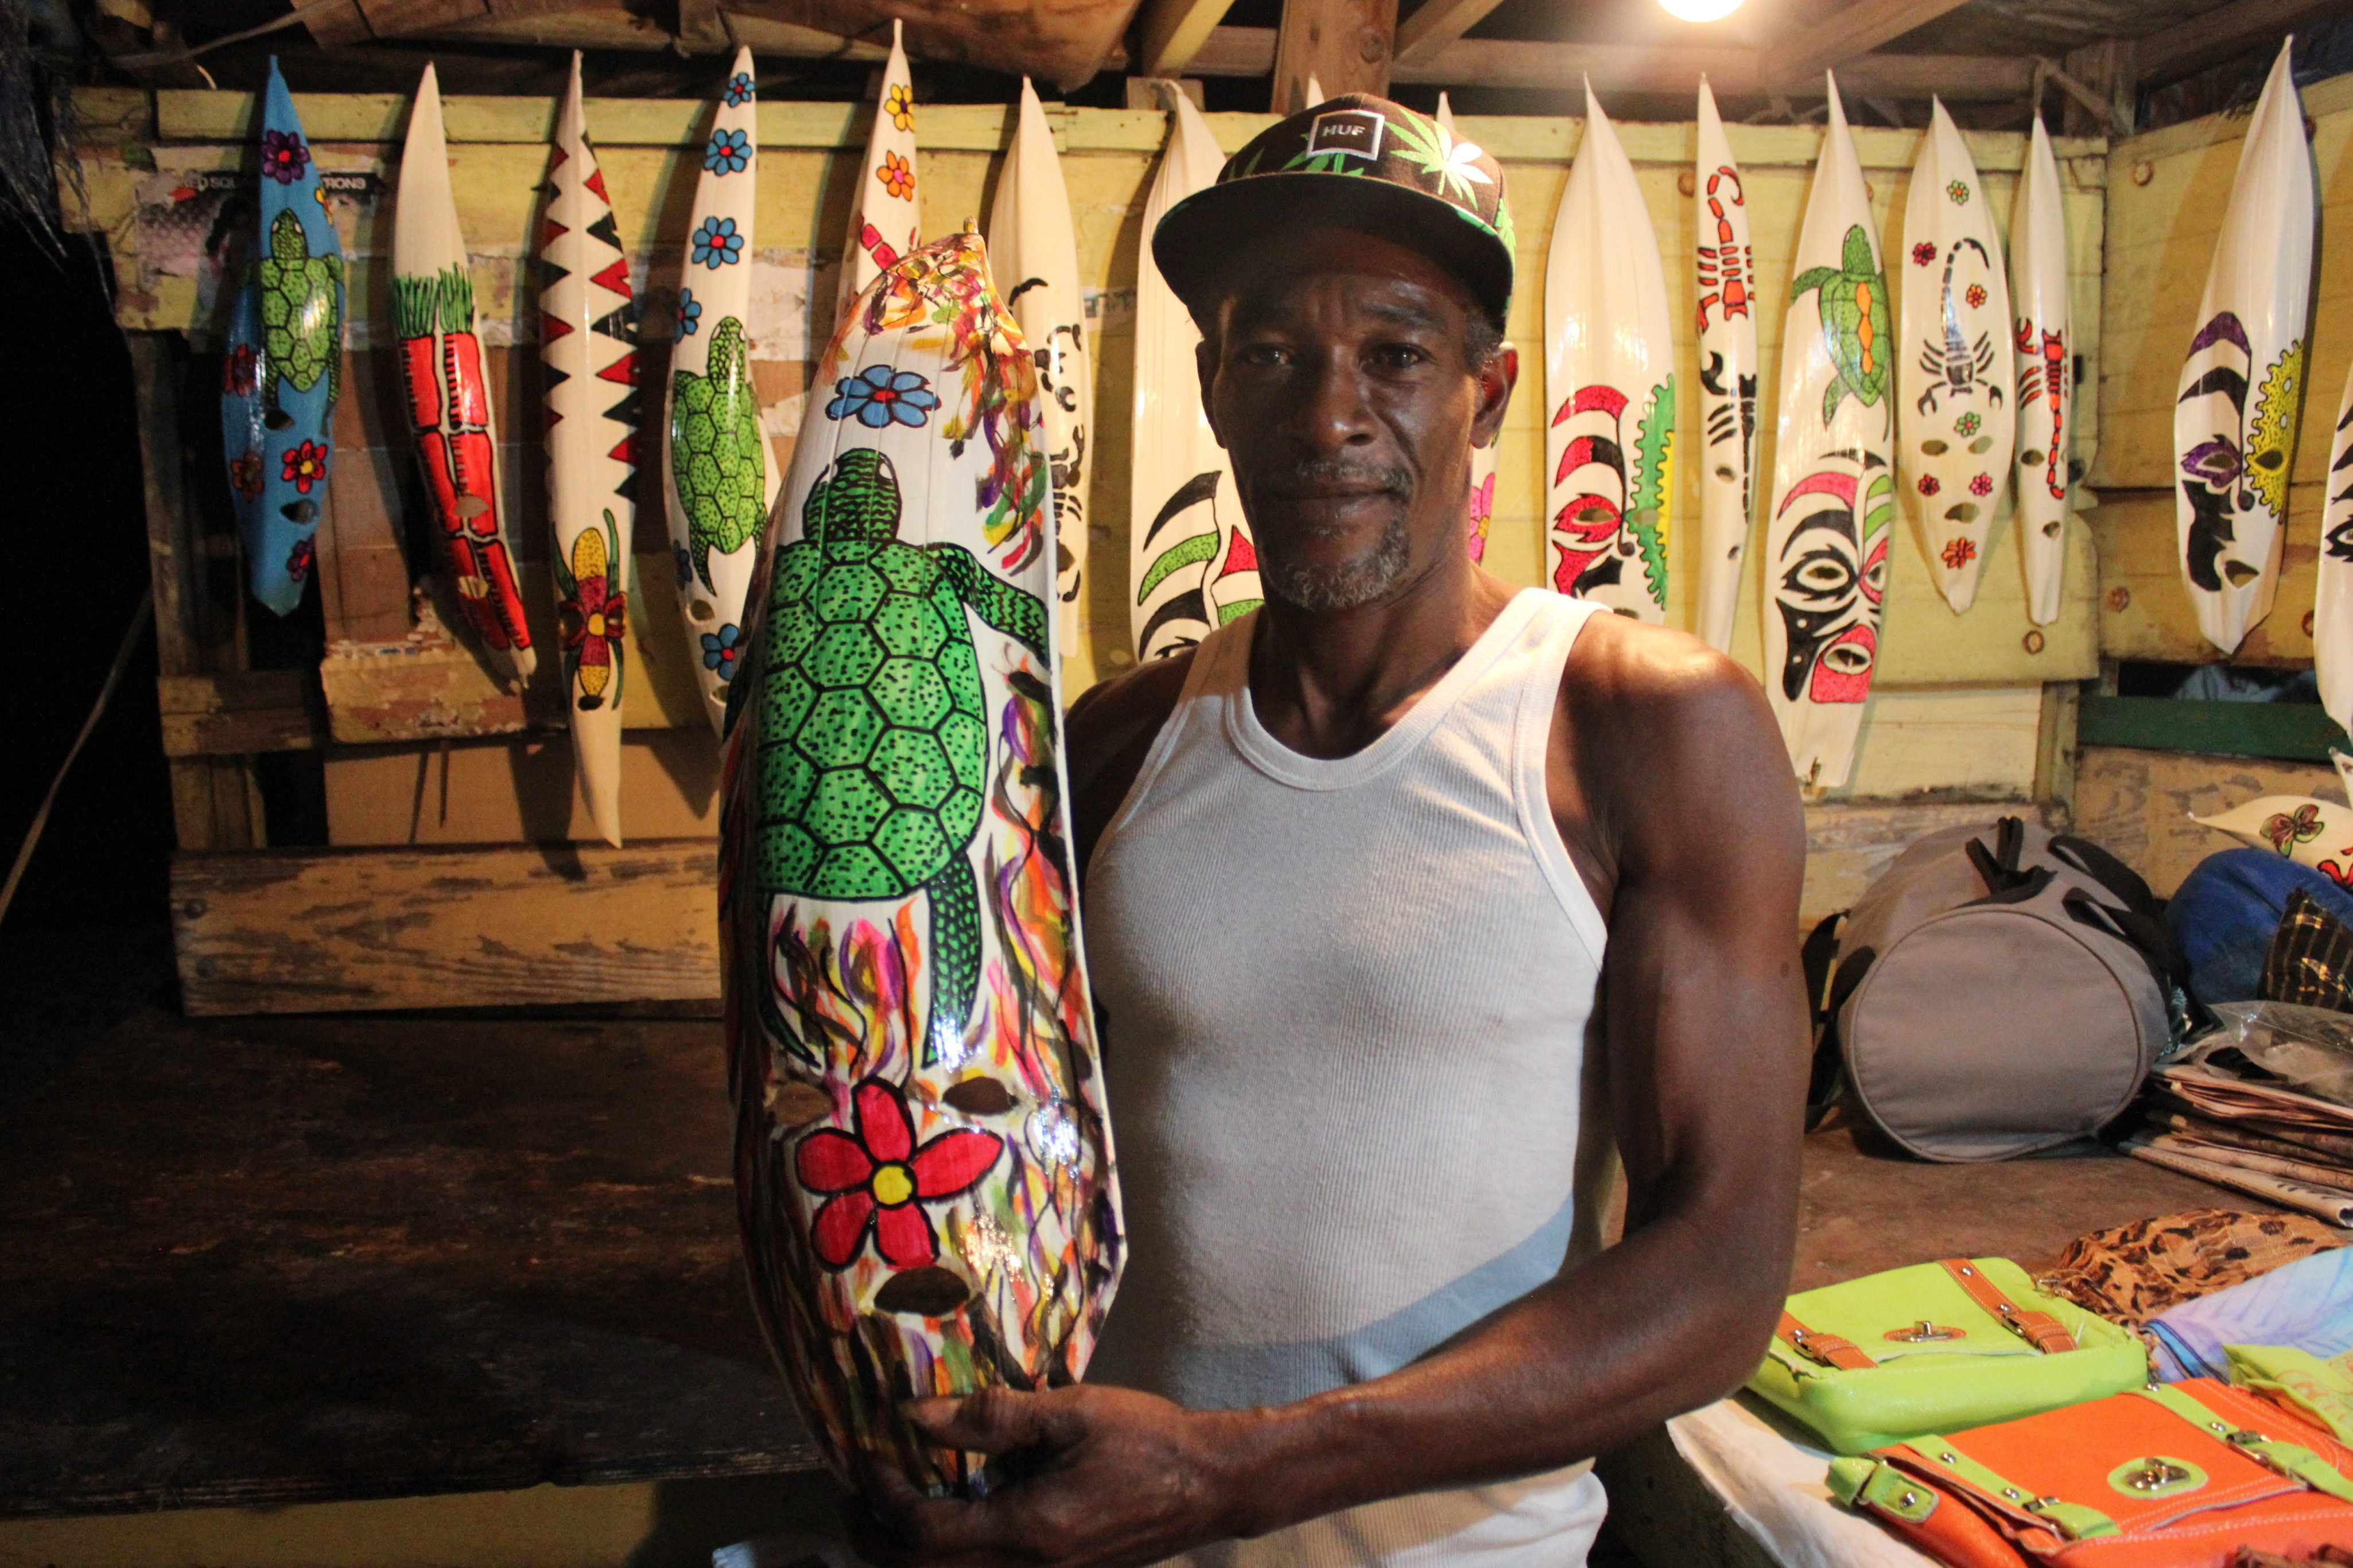 An island vendor at Oisins. Photo by Kimberley Johnson, Ottawa Magazine.